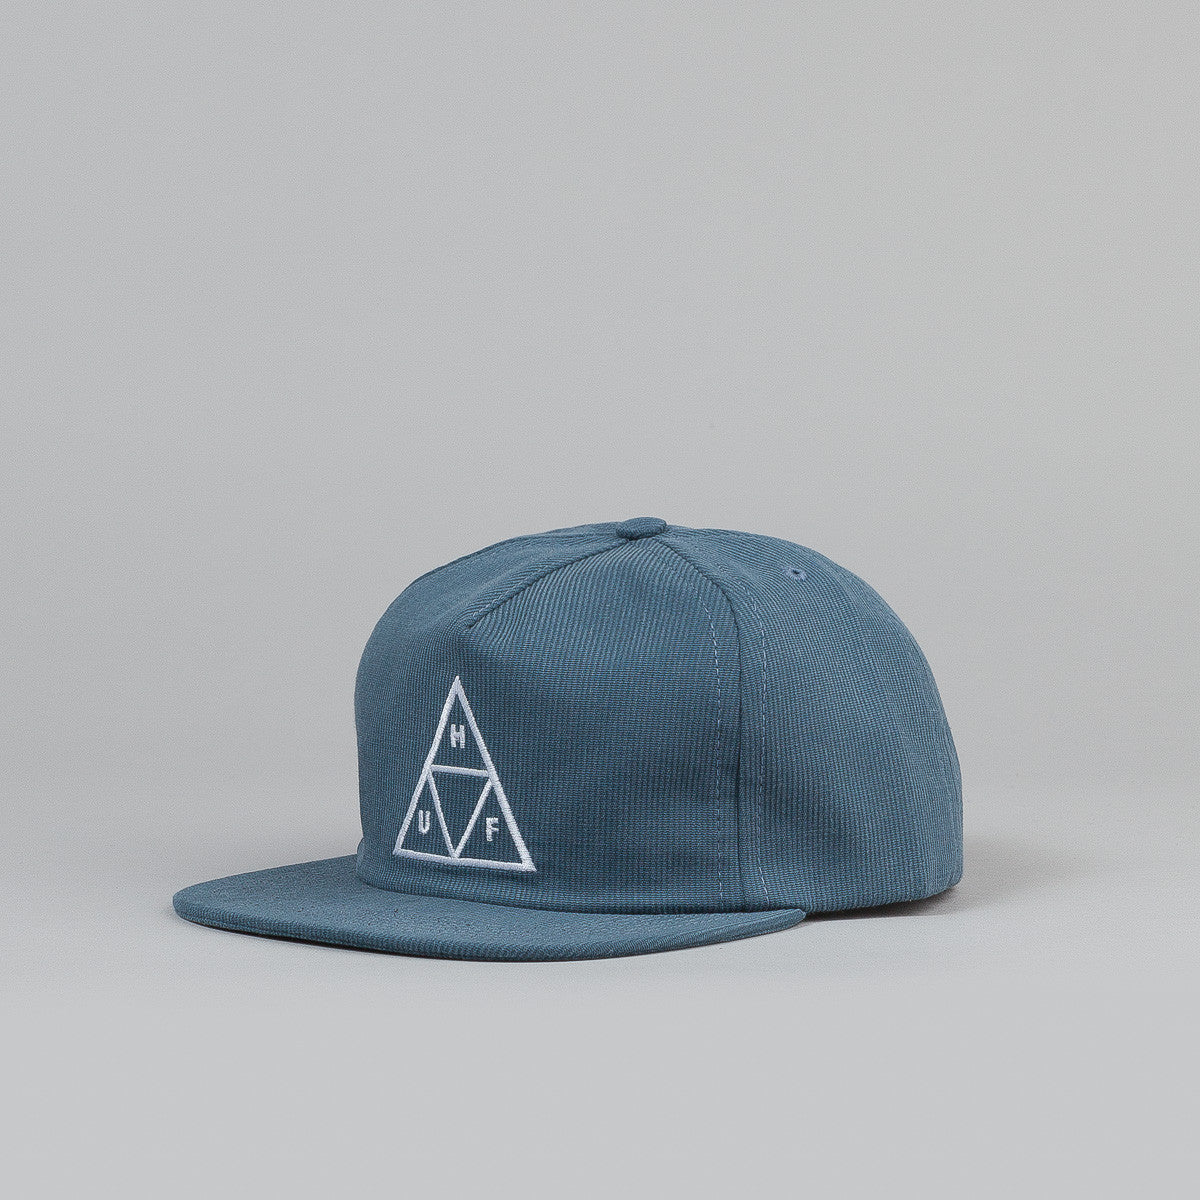 HUF Bedford Triple Triangle Snapback Cap